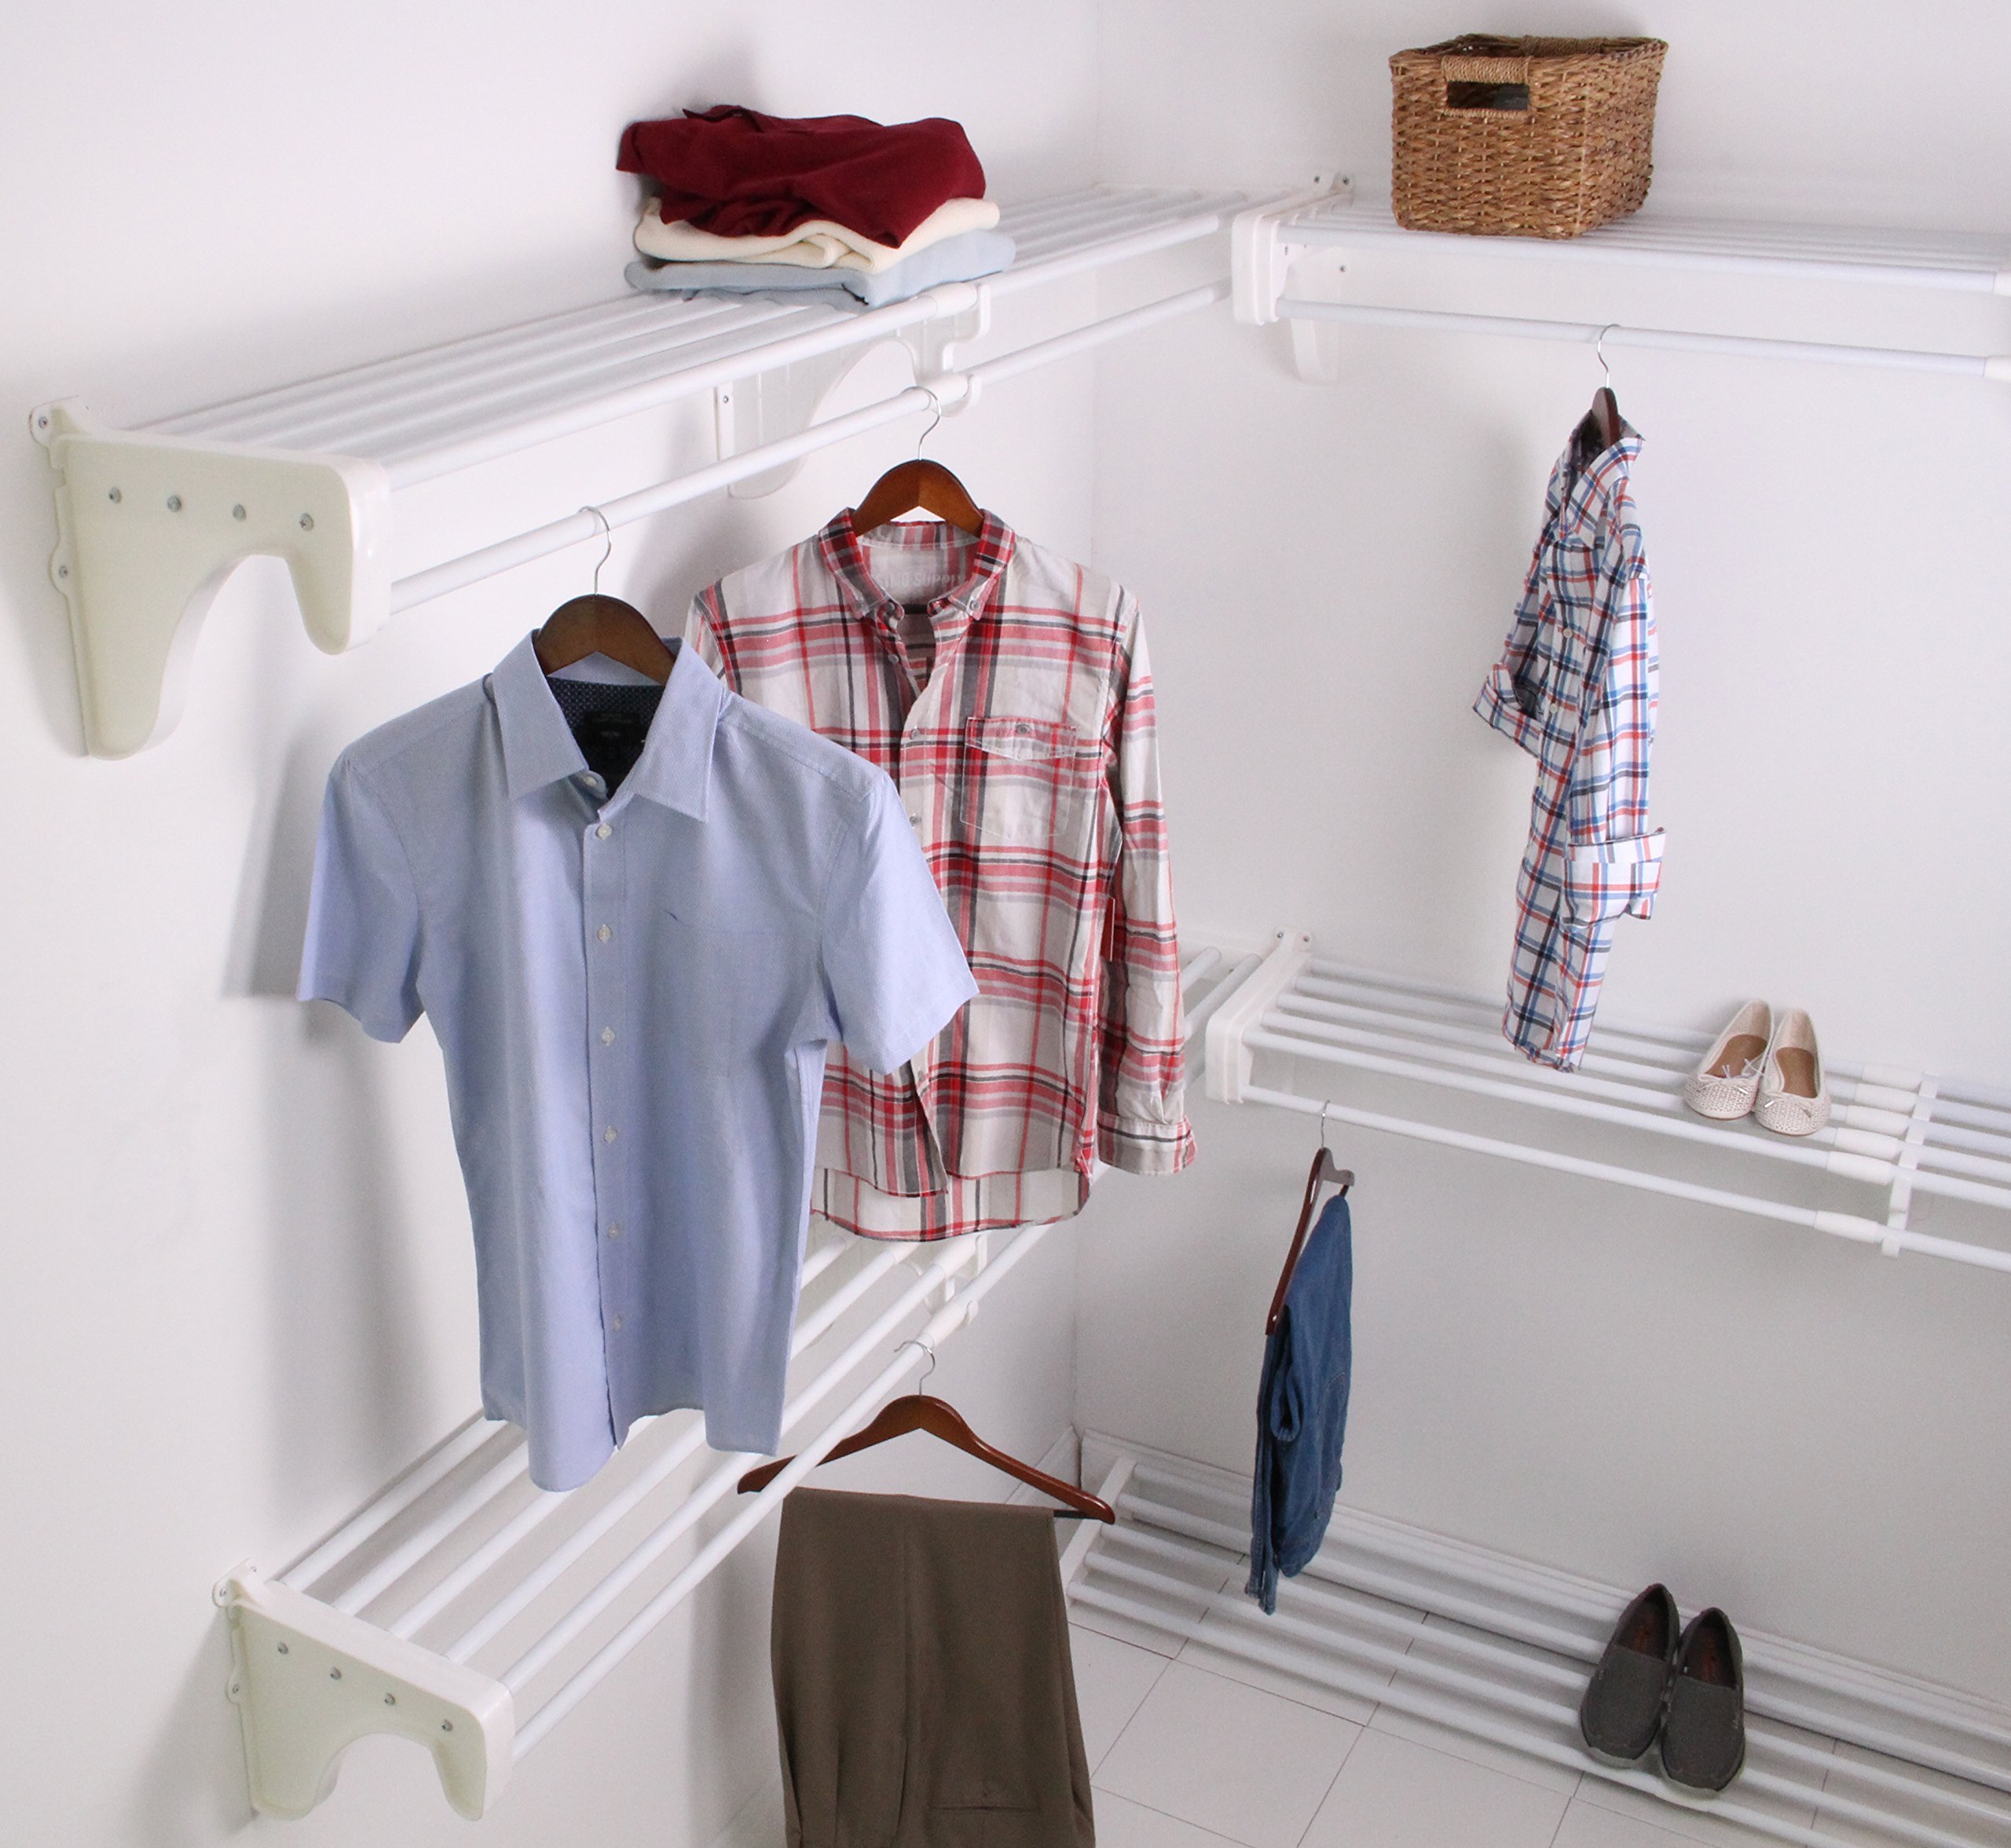 EZ Shelf EZS-K-SCRW72-5-4 Walk-in Closet Kit Hanging and Shelf Space, White by EZ Shelf